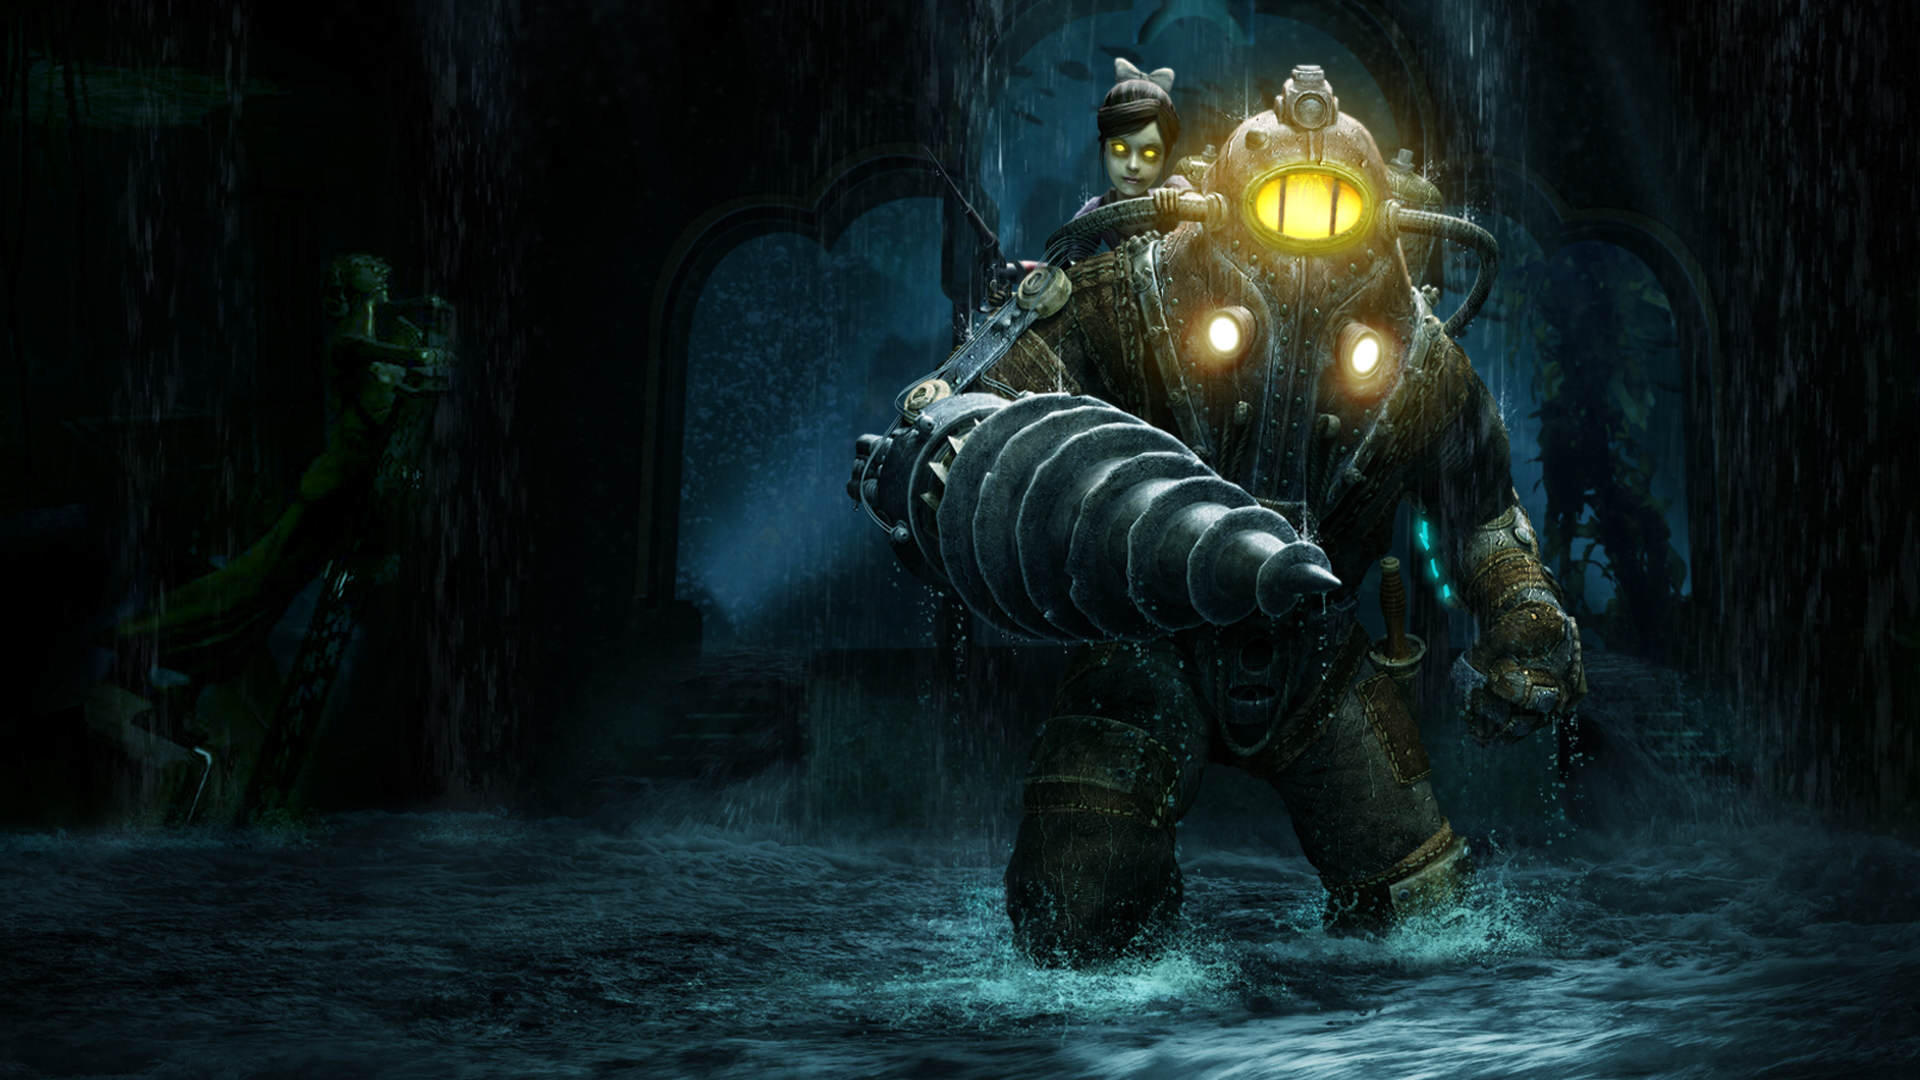 Yet More Unofficial Confirmation Of BioShock: The Collection bioshock 2